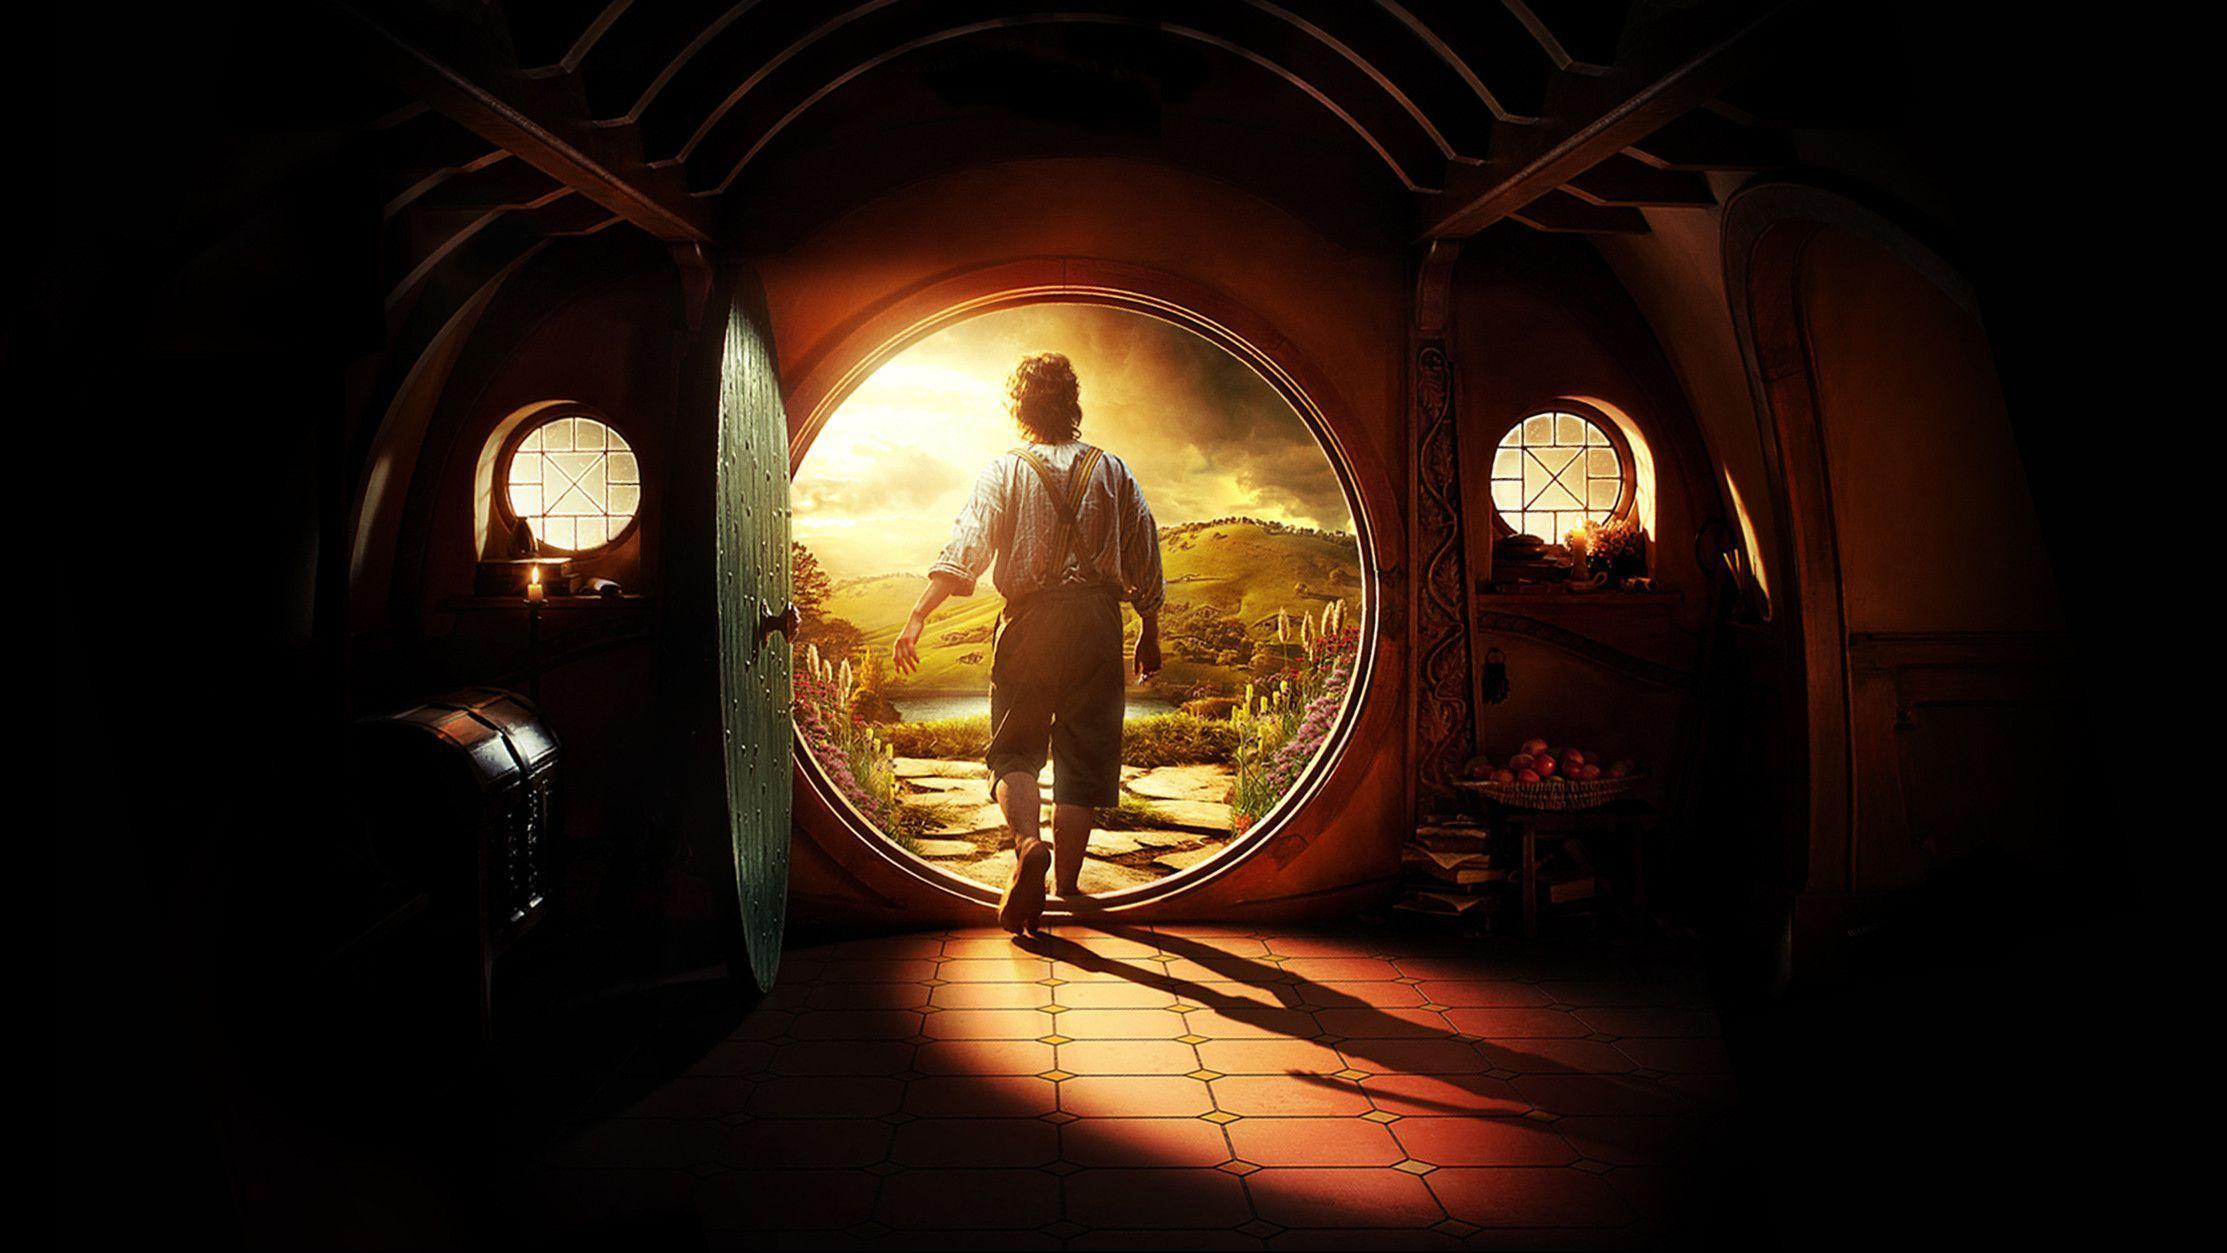 the hobbit movie wallpapers - photo #14